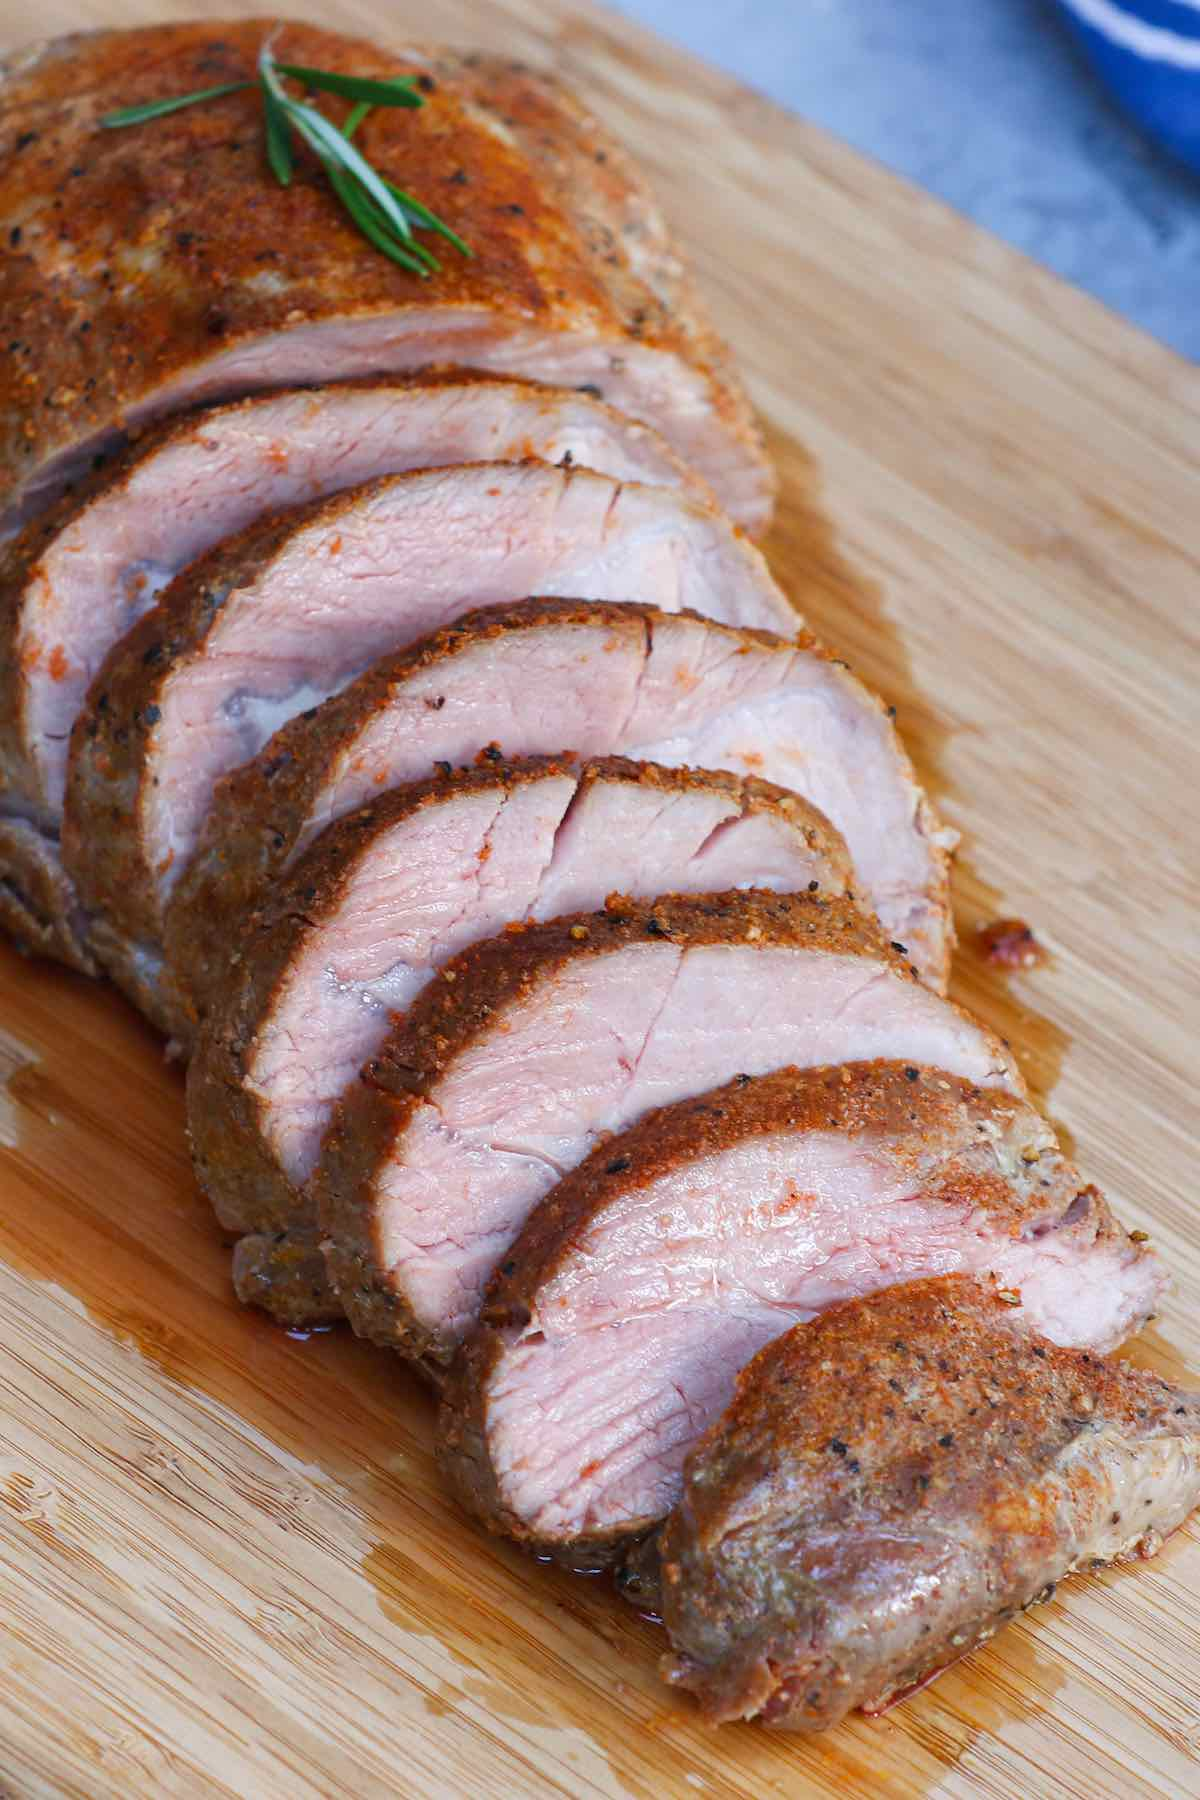 Sliced sous vide pork loin served on a wooden cutting board.